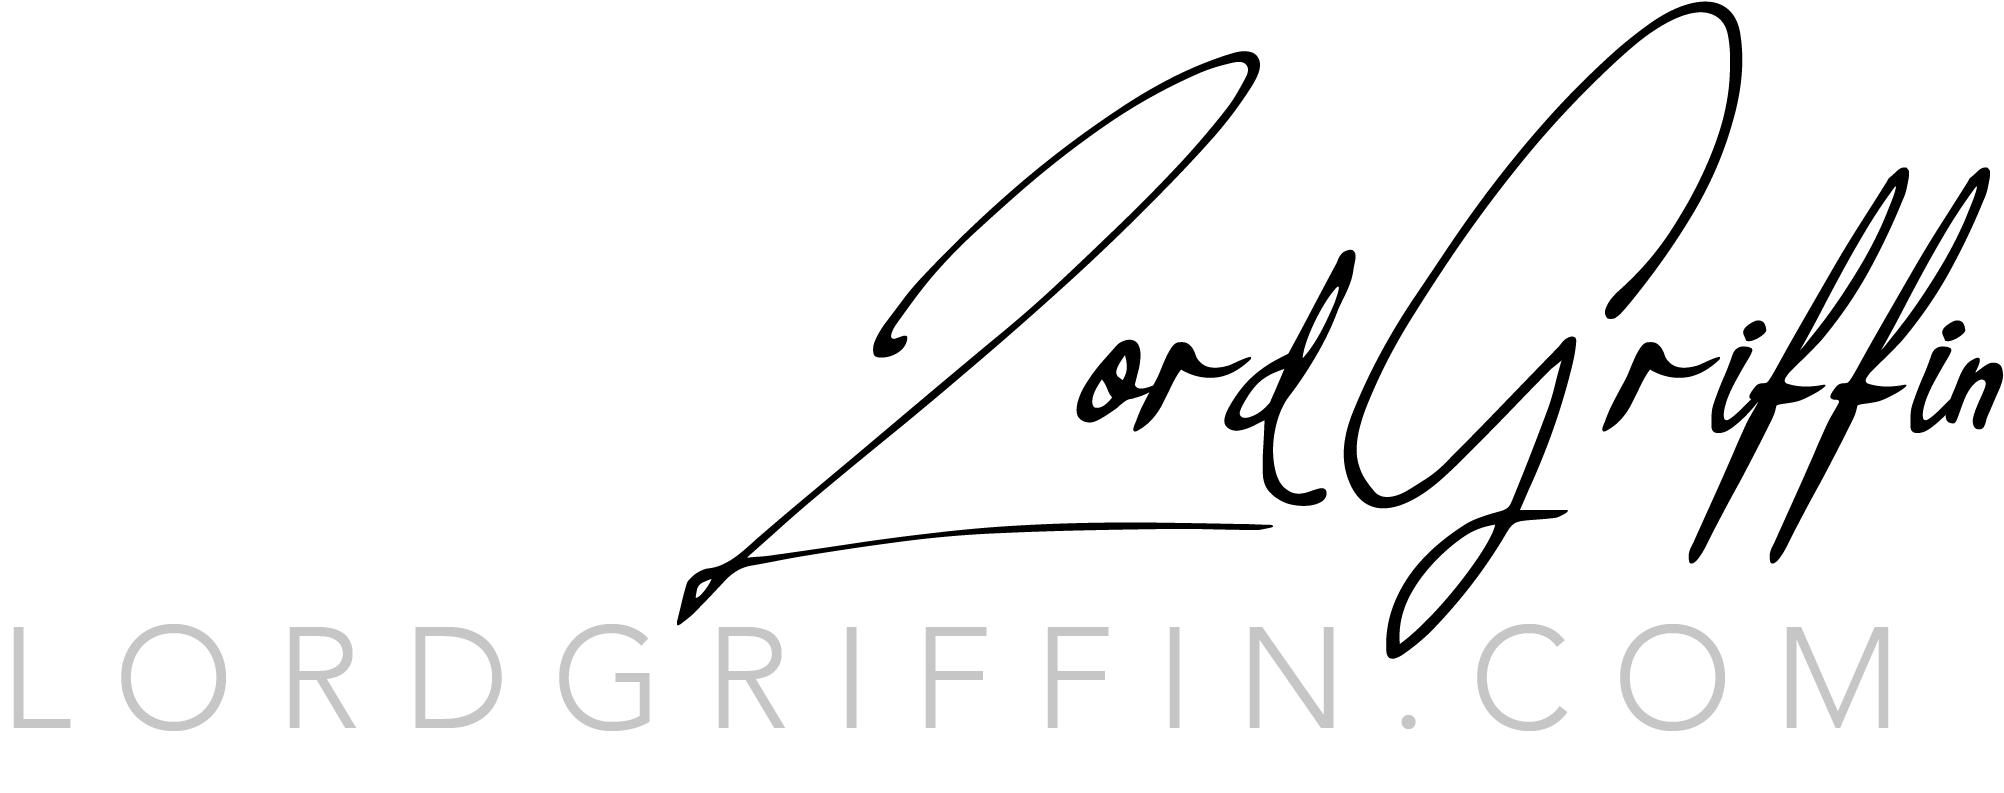 Lord Griffin